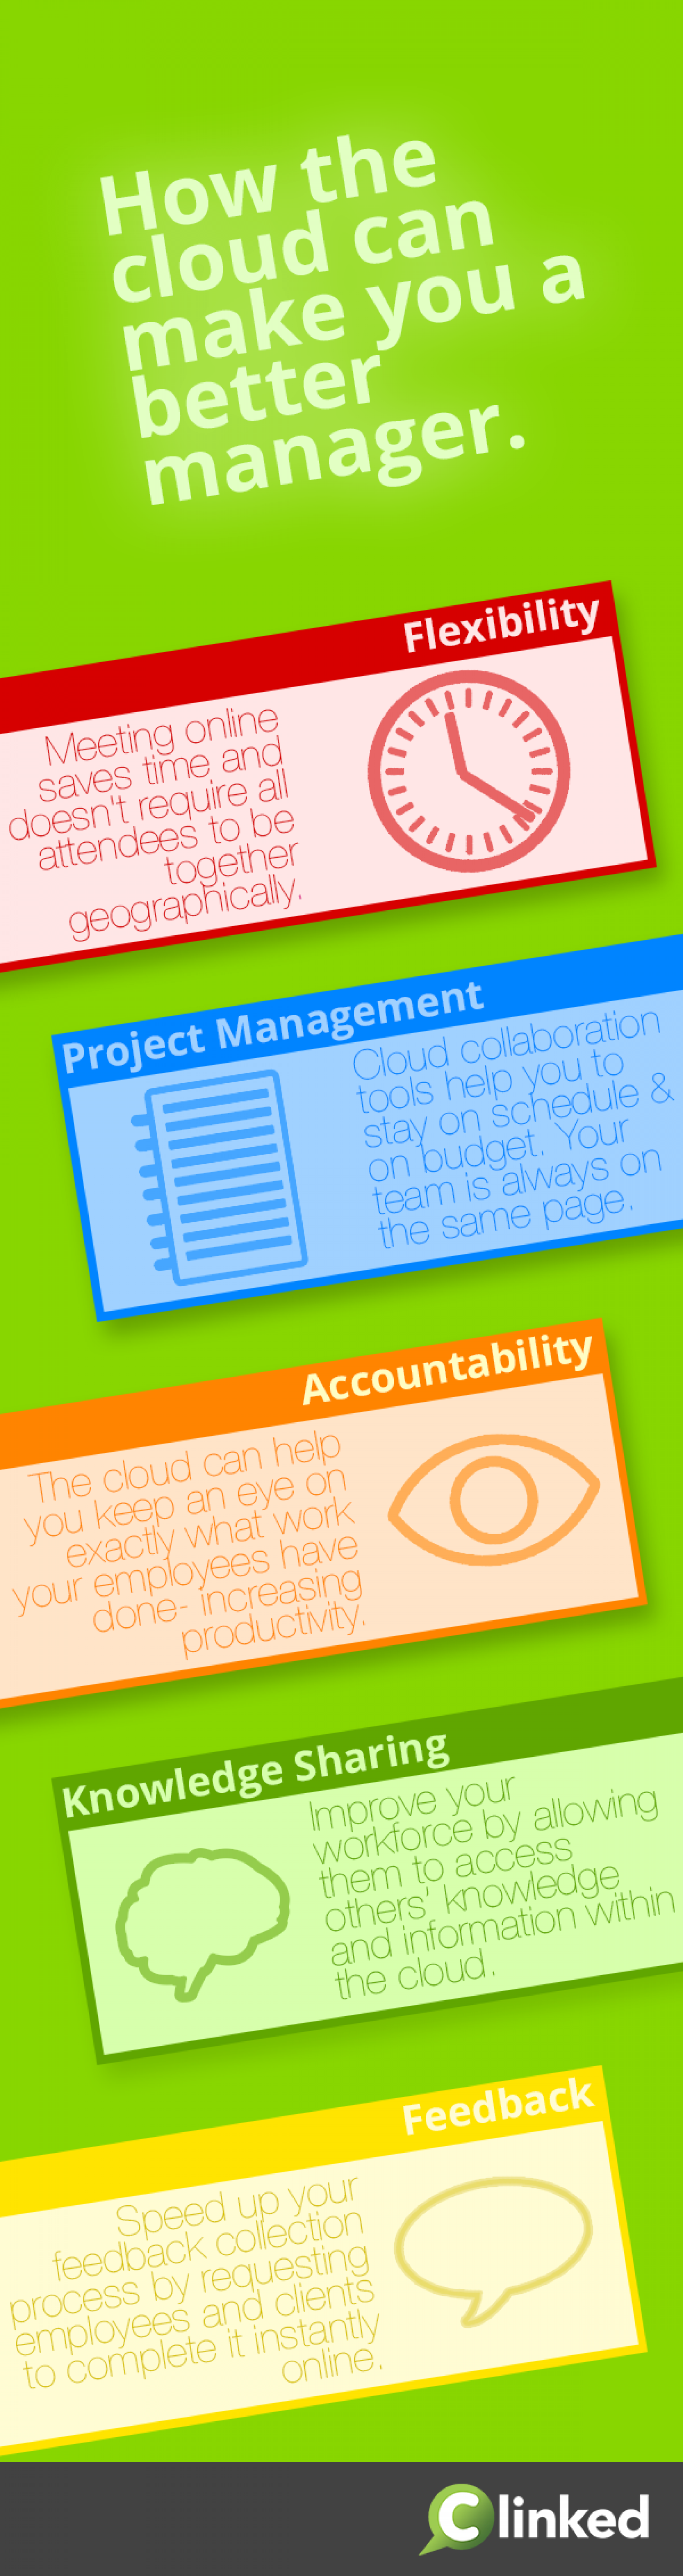 How the cloud can make you a better manager. Infographic